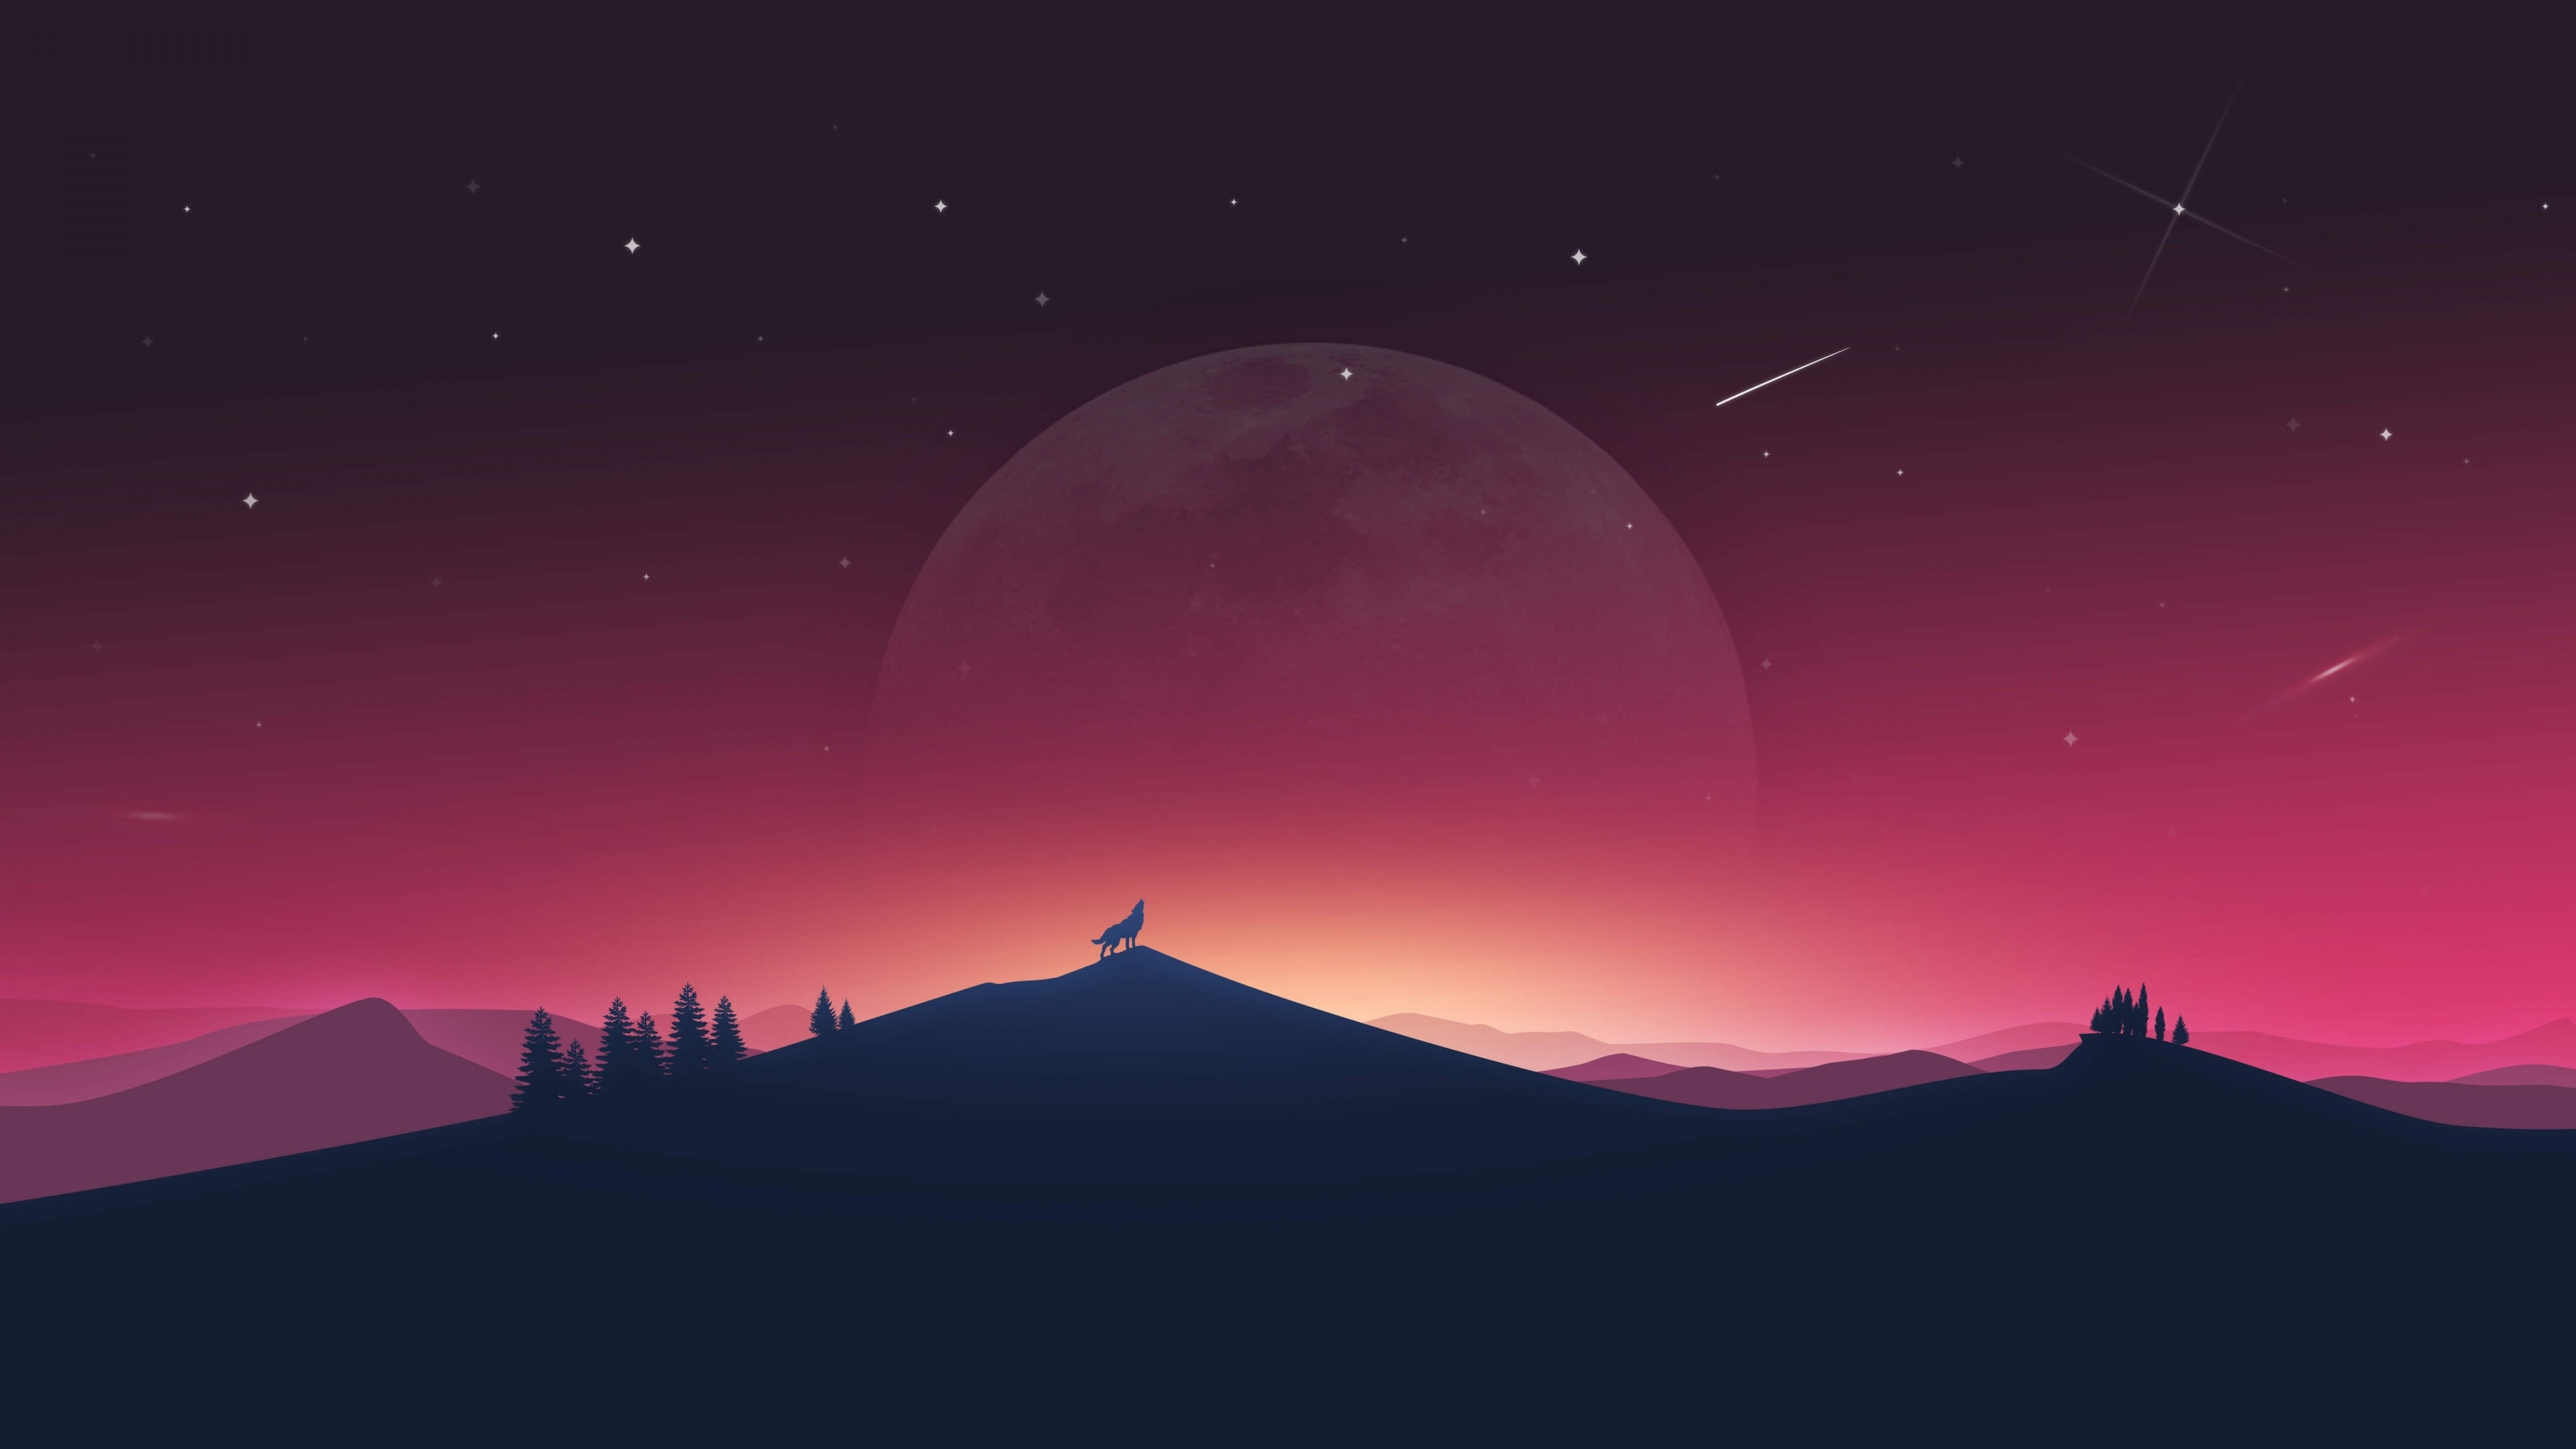 wallpaper wolf howling, moon, silhouette, minimal, 4k, creative